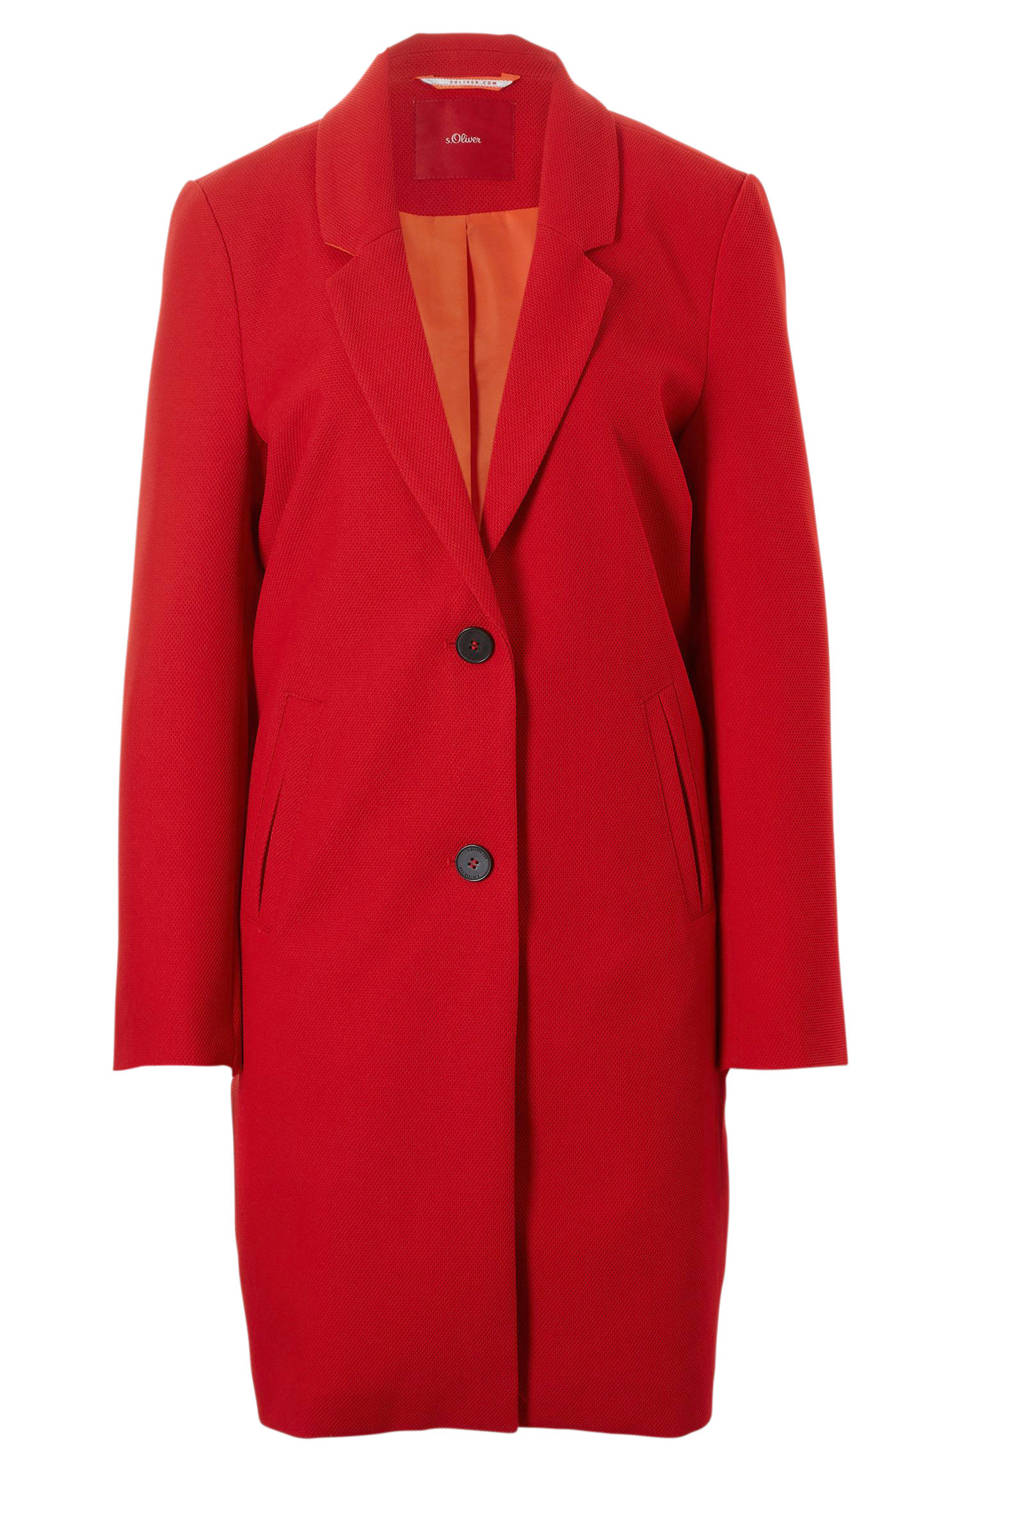 s.Oliver coat rood, Rood